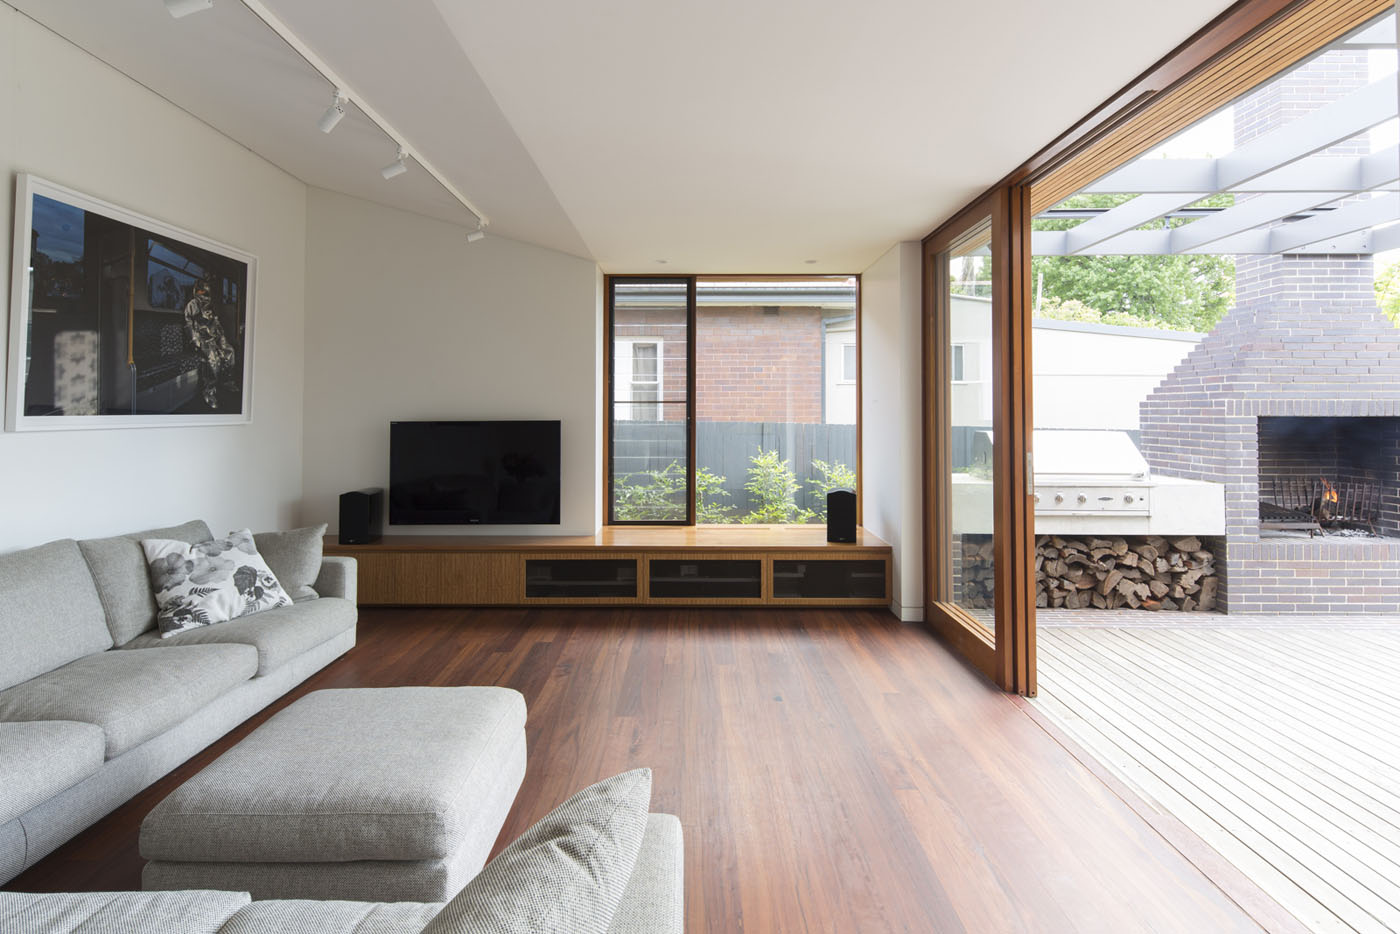 Denney House by Sam Crawford Architects, open living room connected to external barbecue area